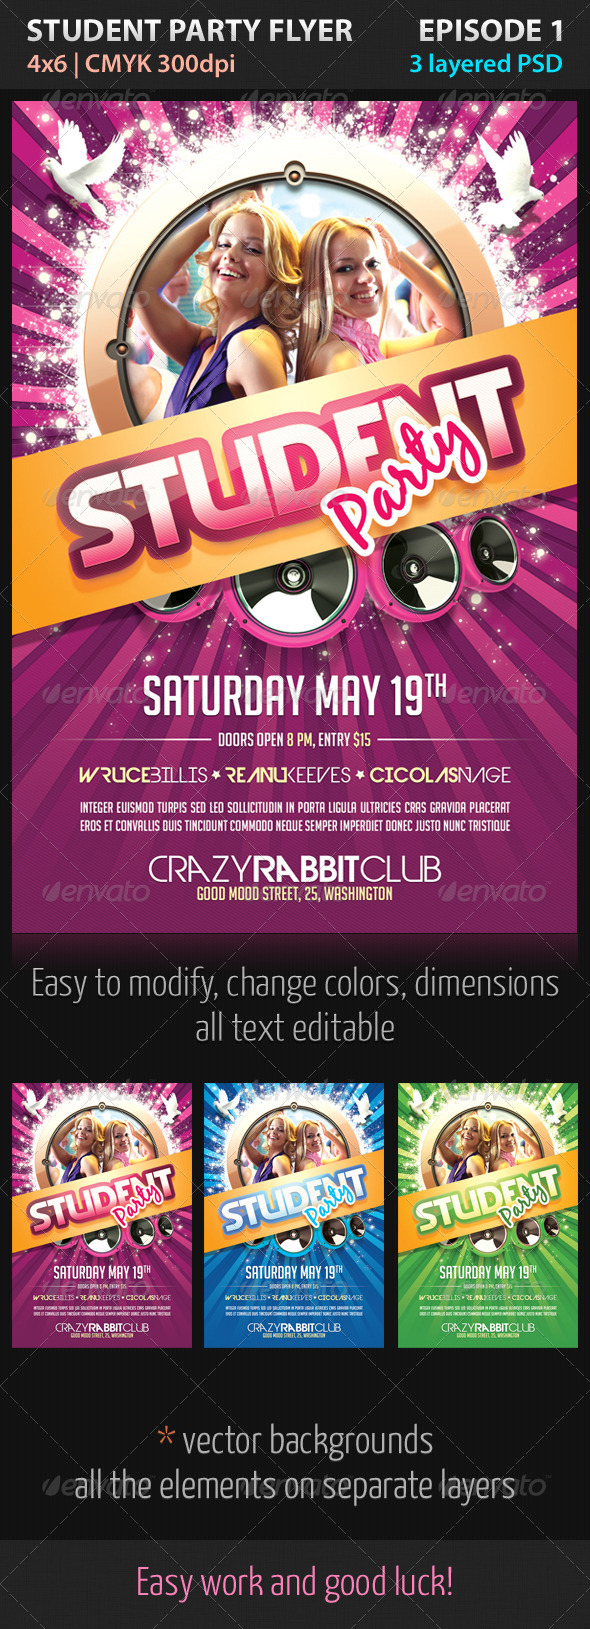 Student Party Flyer Episode 1 - Clubs & Parties Events